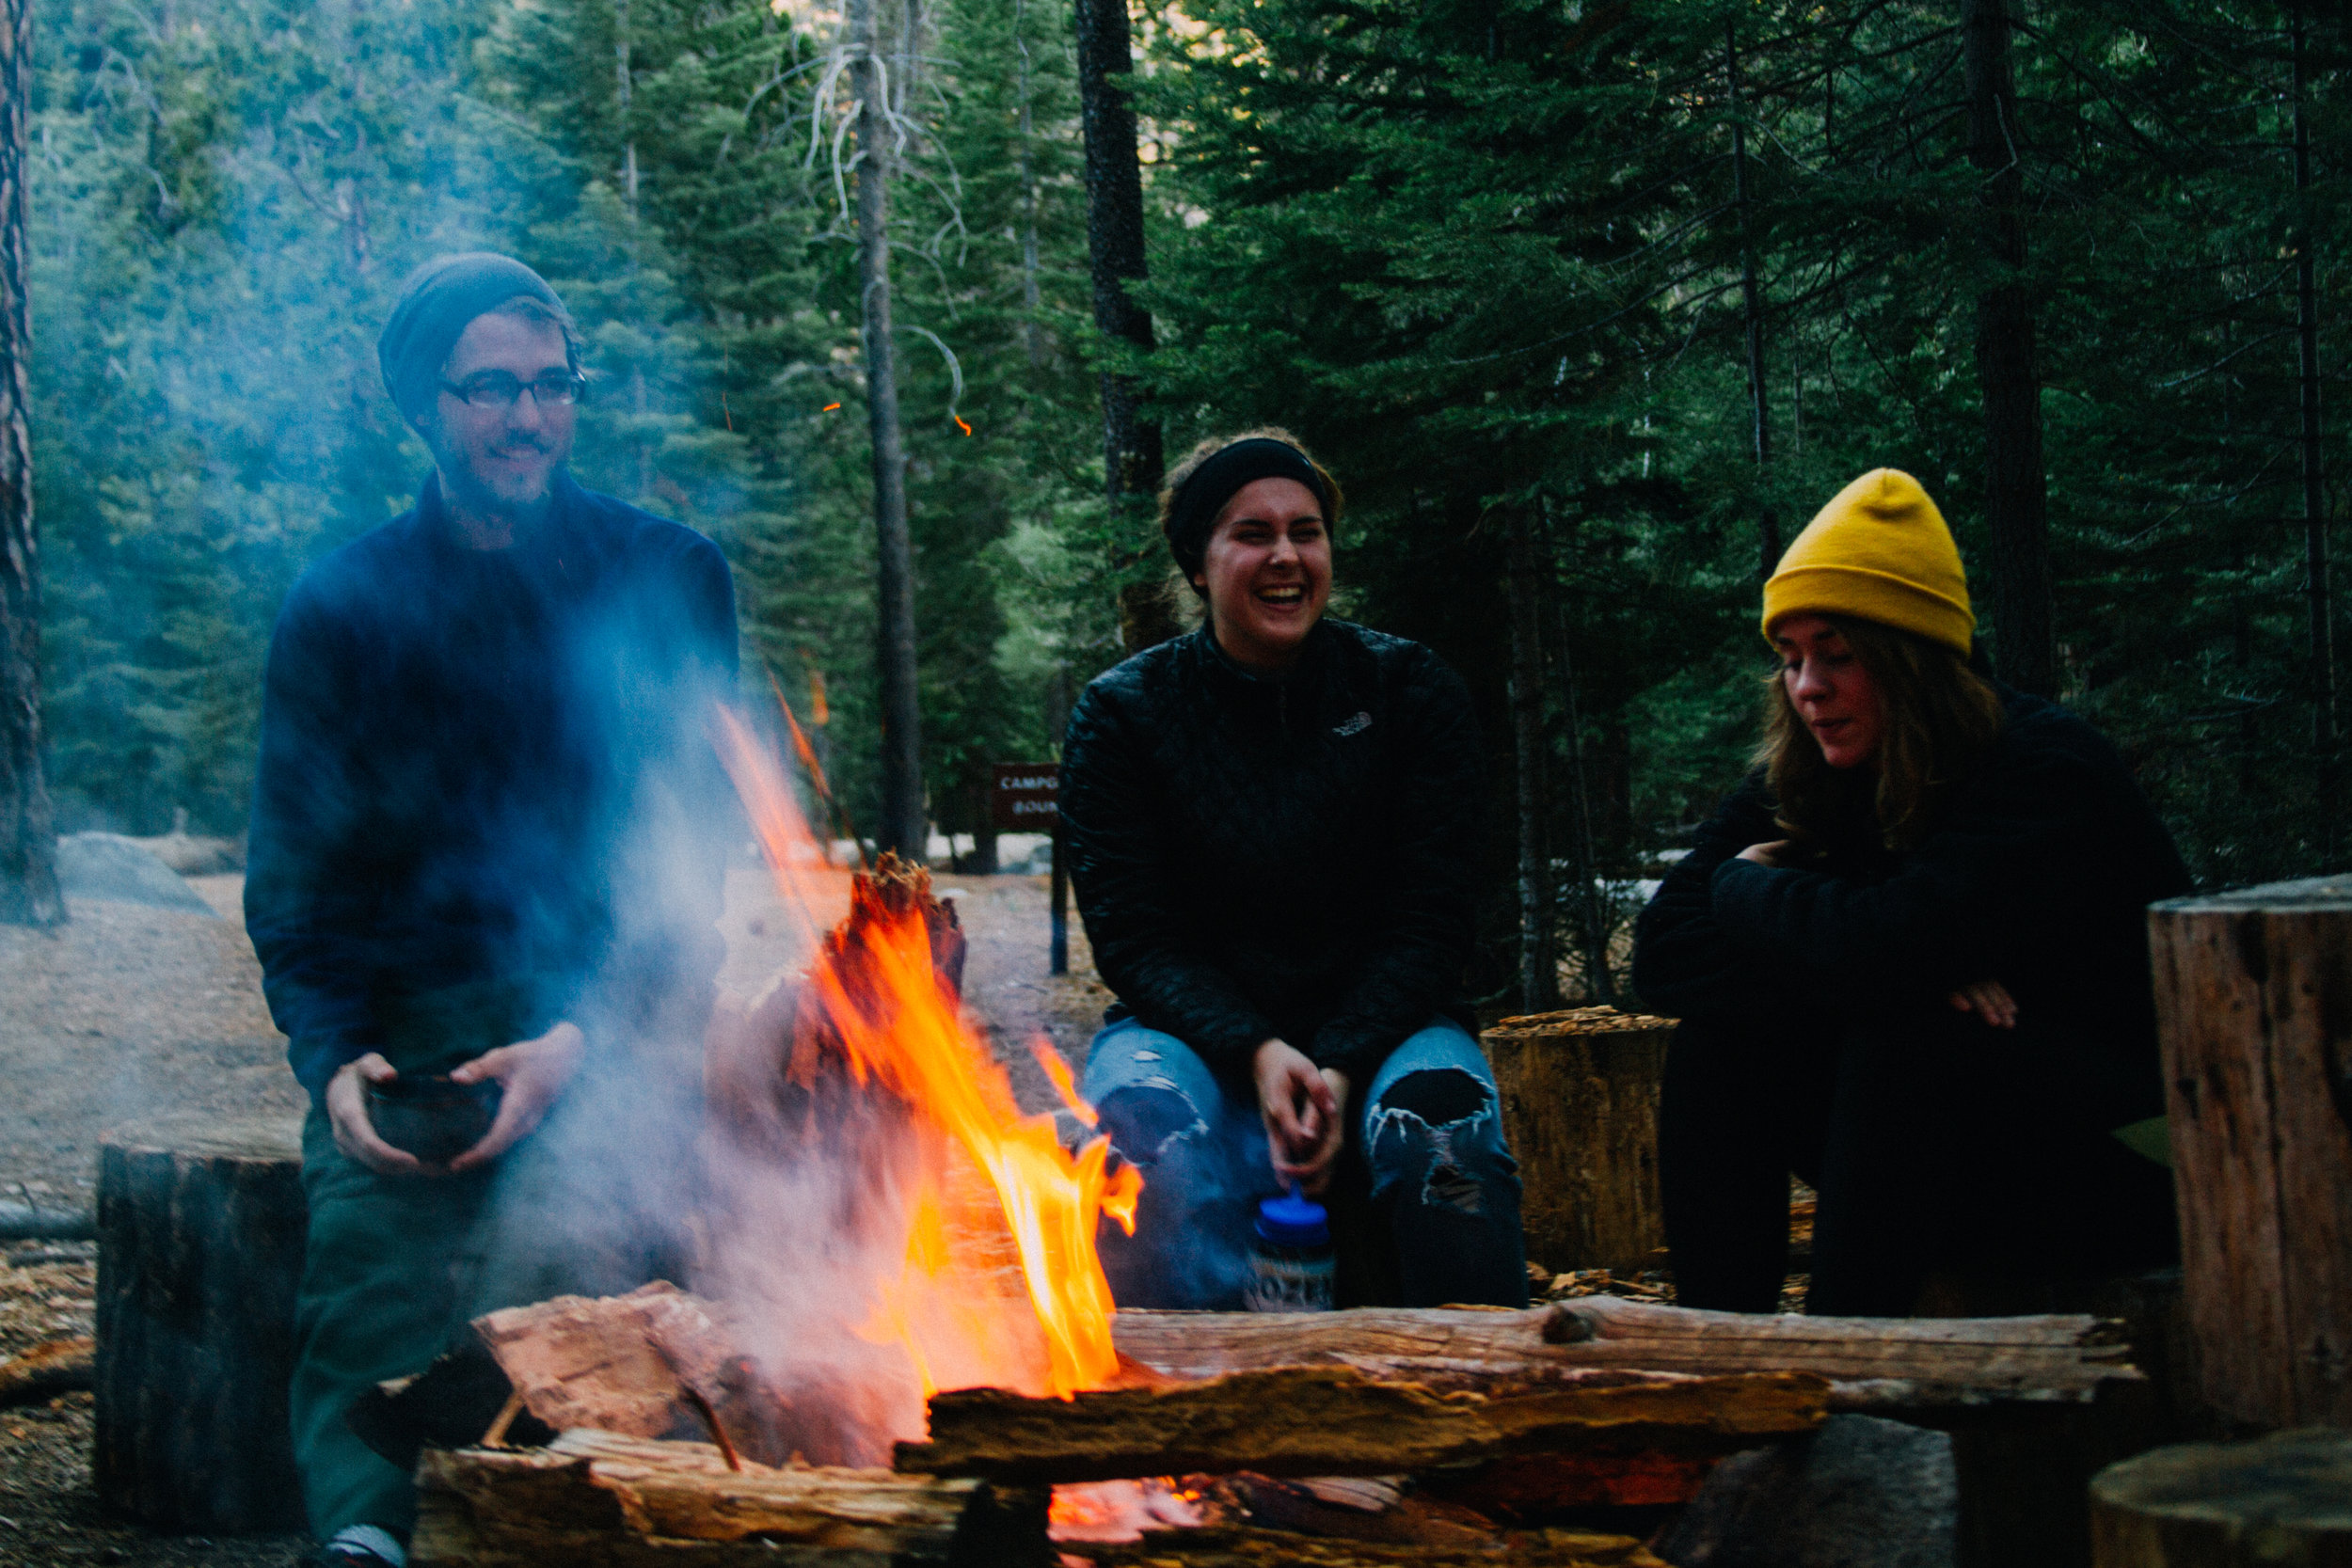 Camping at Little Yosemite Valley